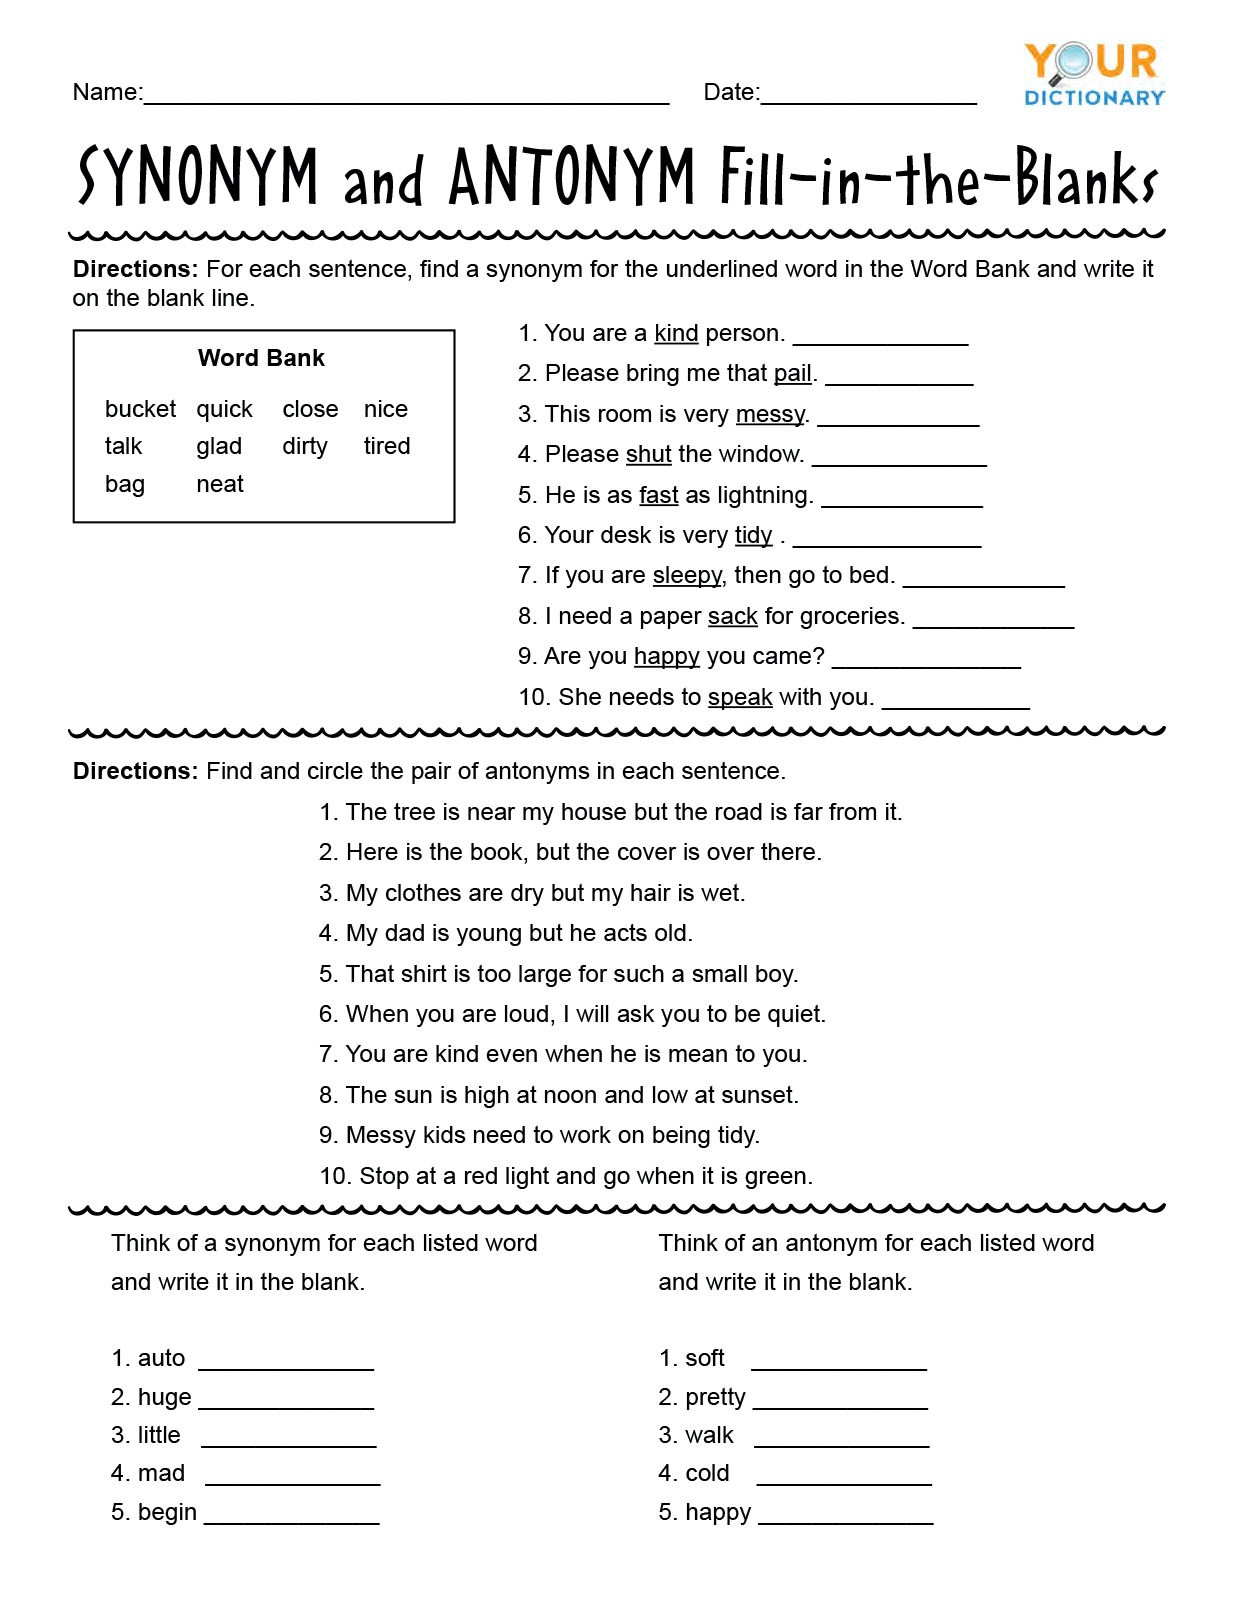 Homonym Worksheets Middle School First Grade Synonyms and Antonyms Worksheets